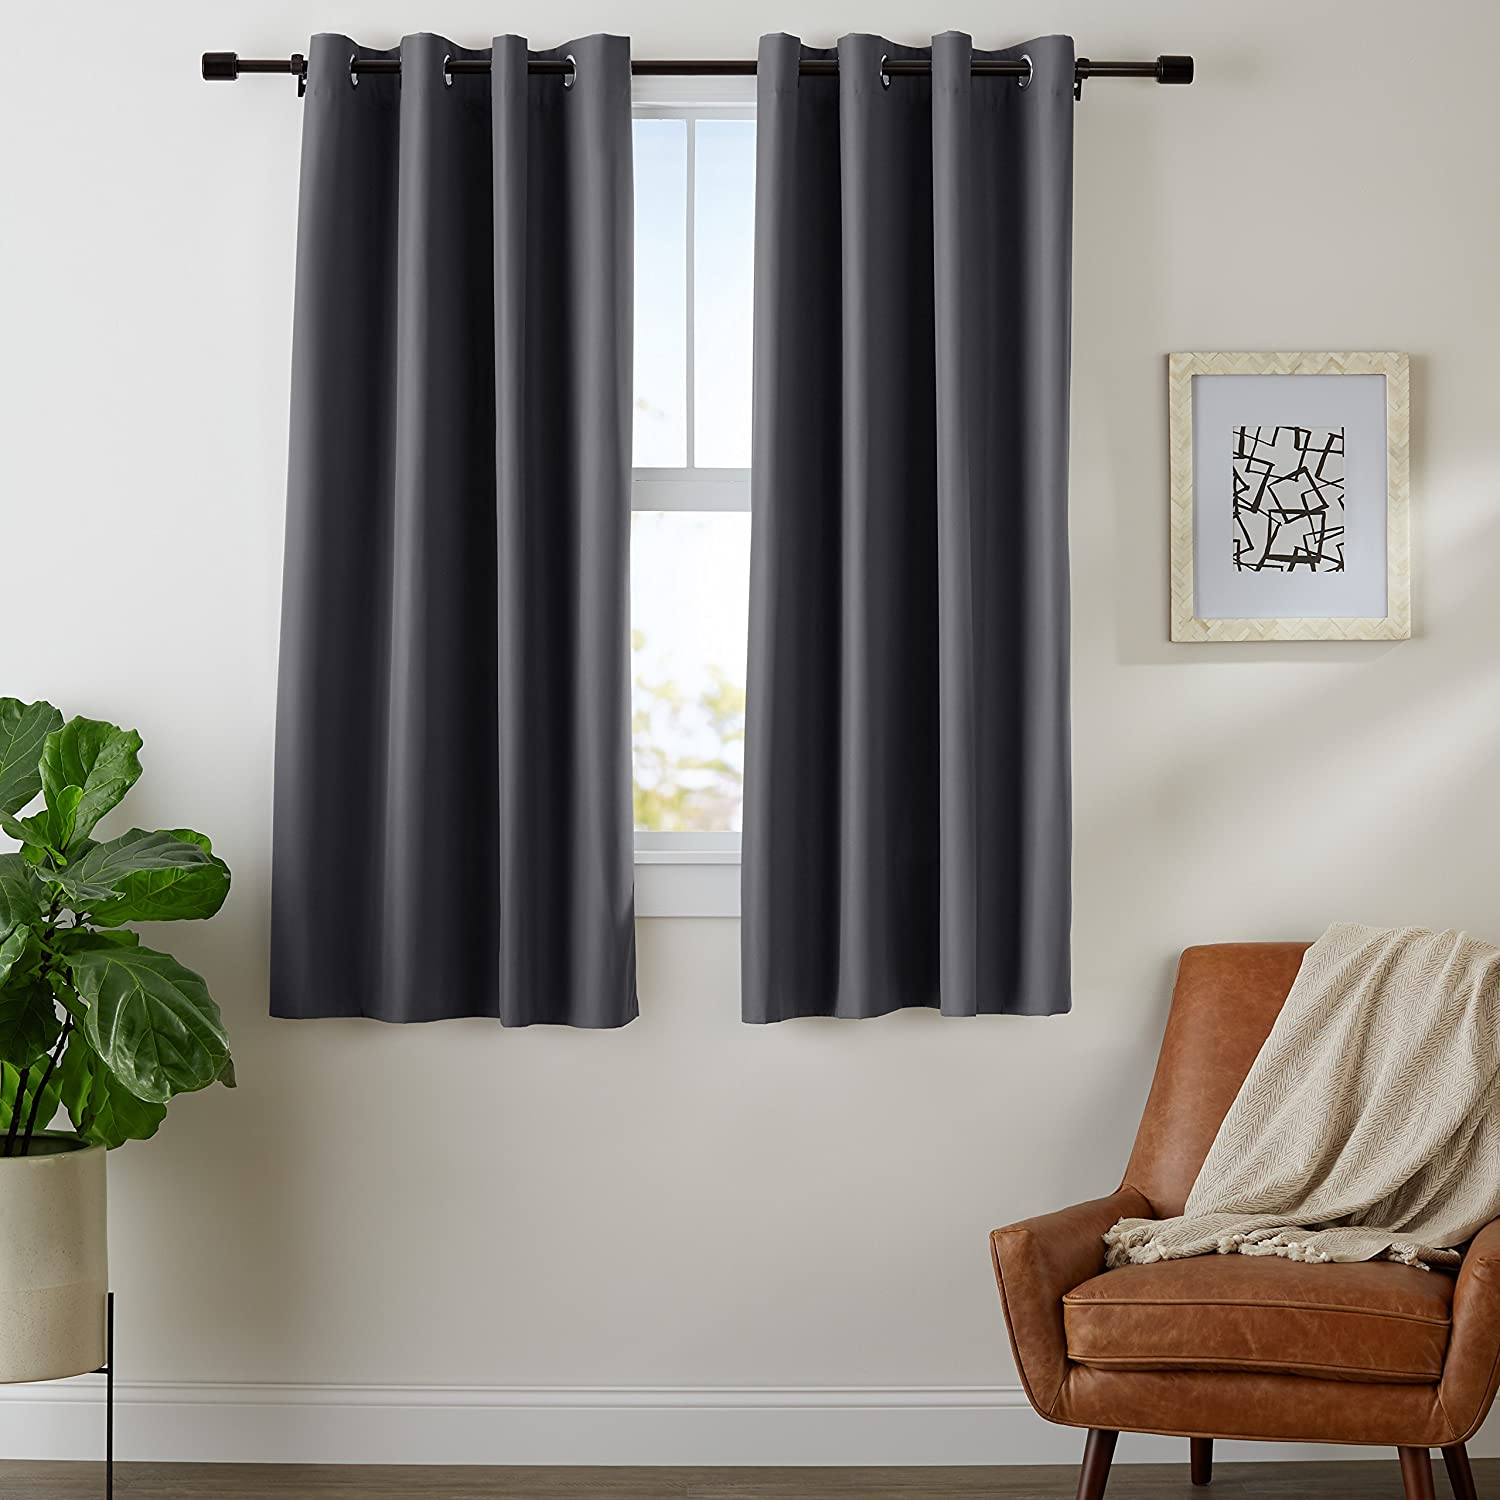 Room-Darkening Grommet Curtain...